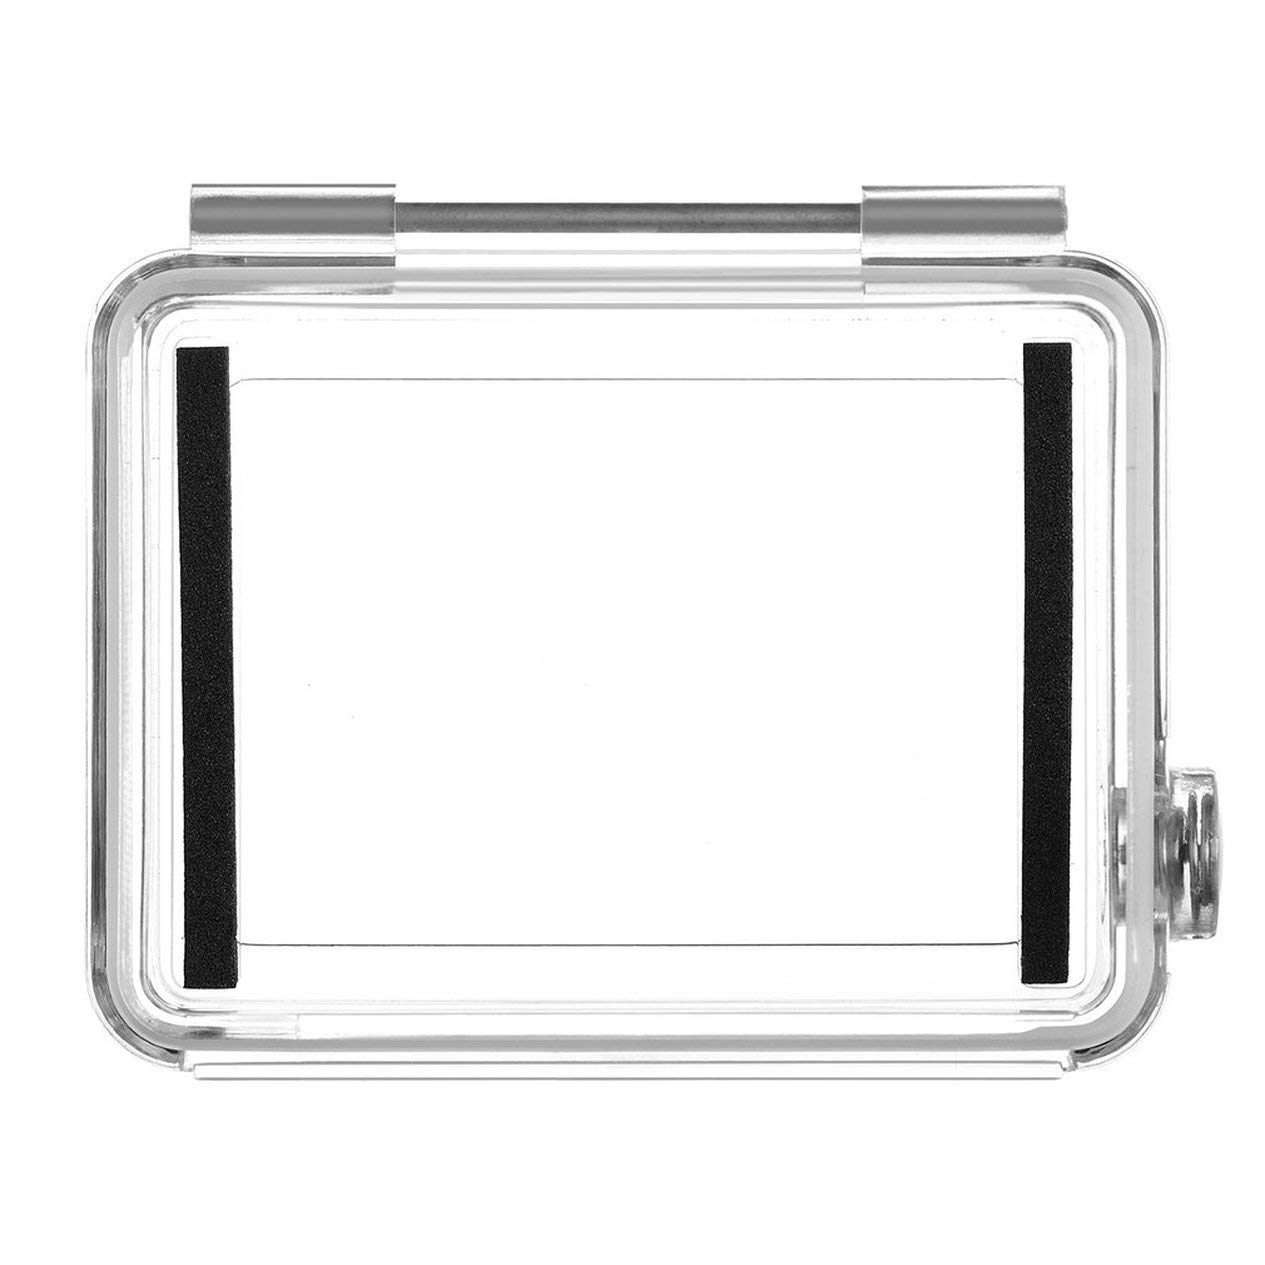 LCD BacPac Display Viewer Monitor Screen 2 Inch Color TFT LCD Camera Accessories for Gopro Hero 3 3+ 4 by Fashinlook